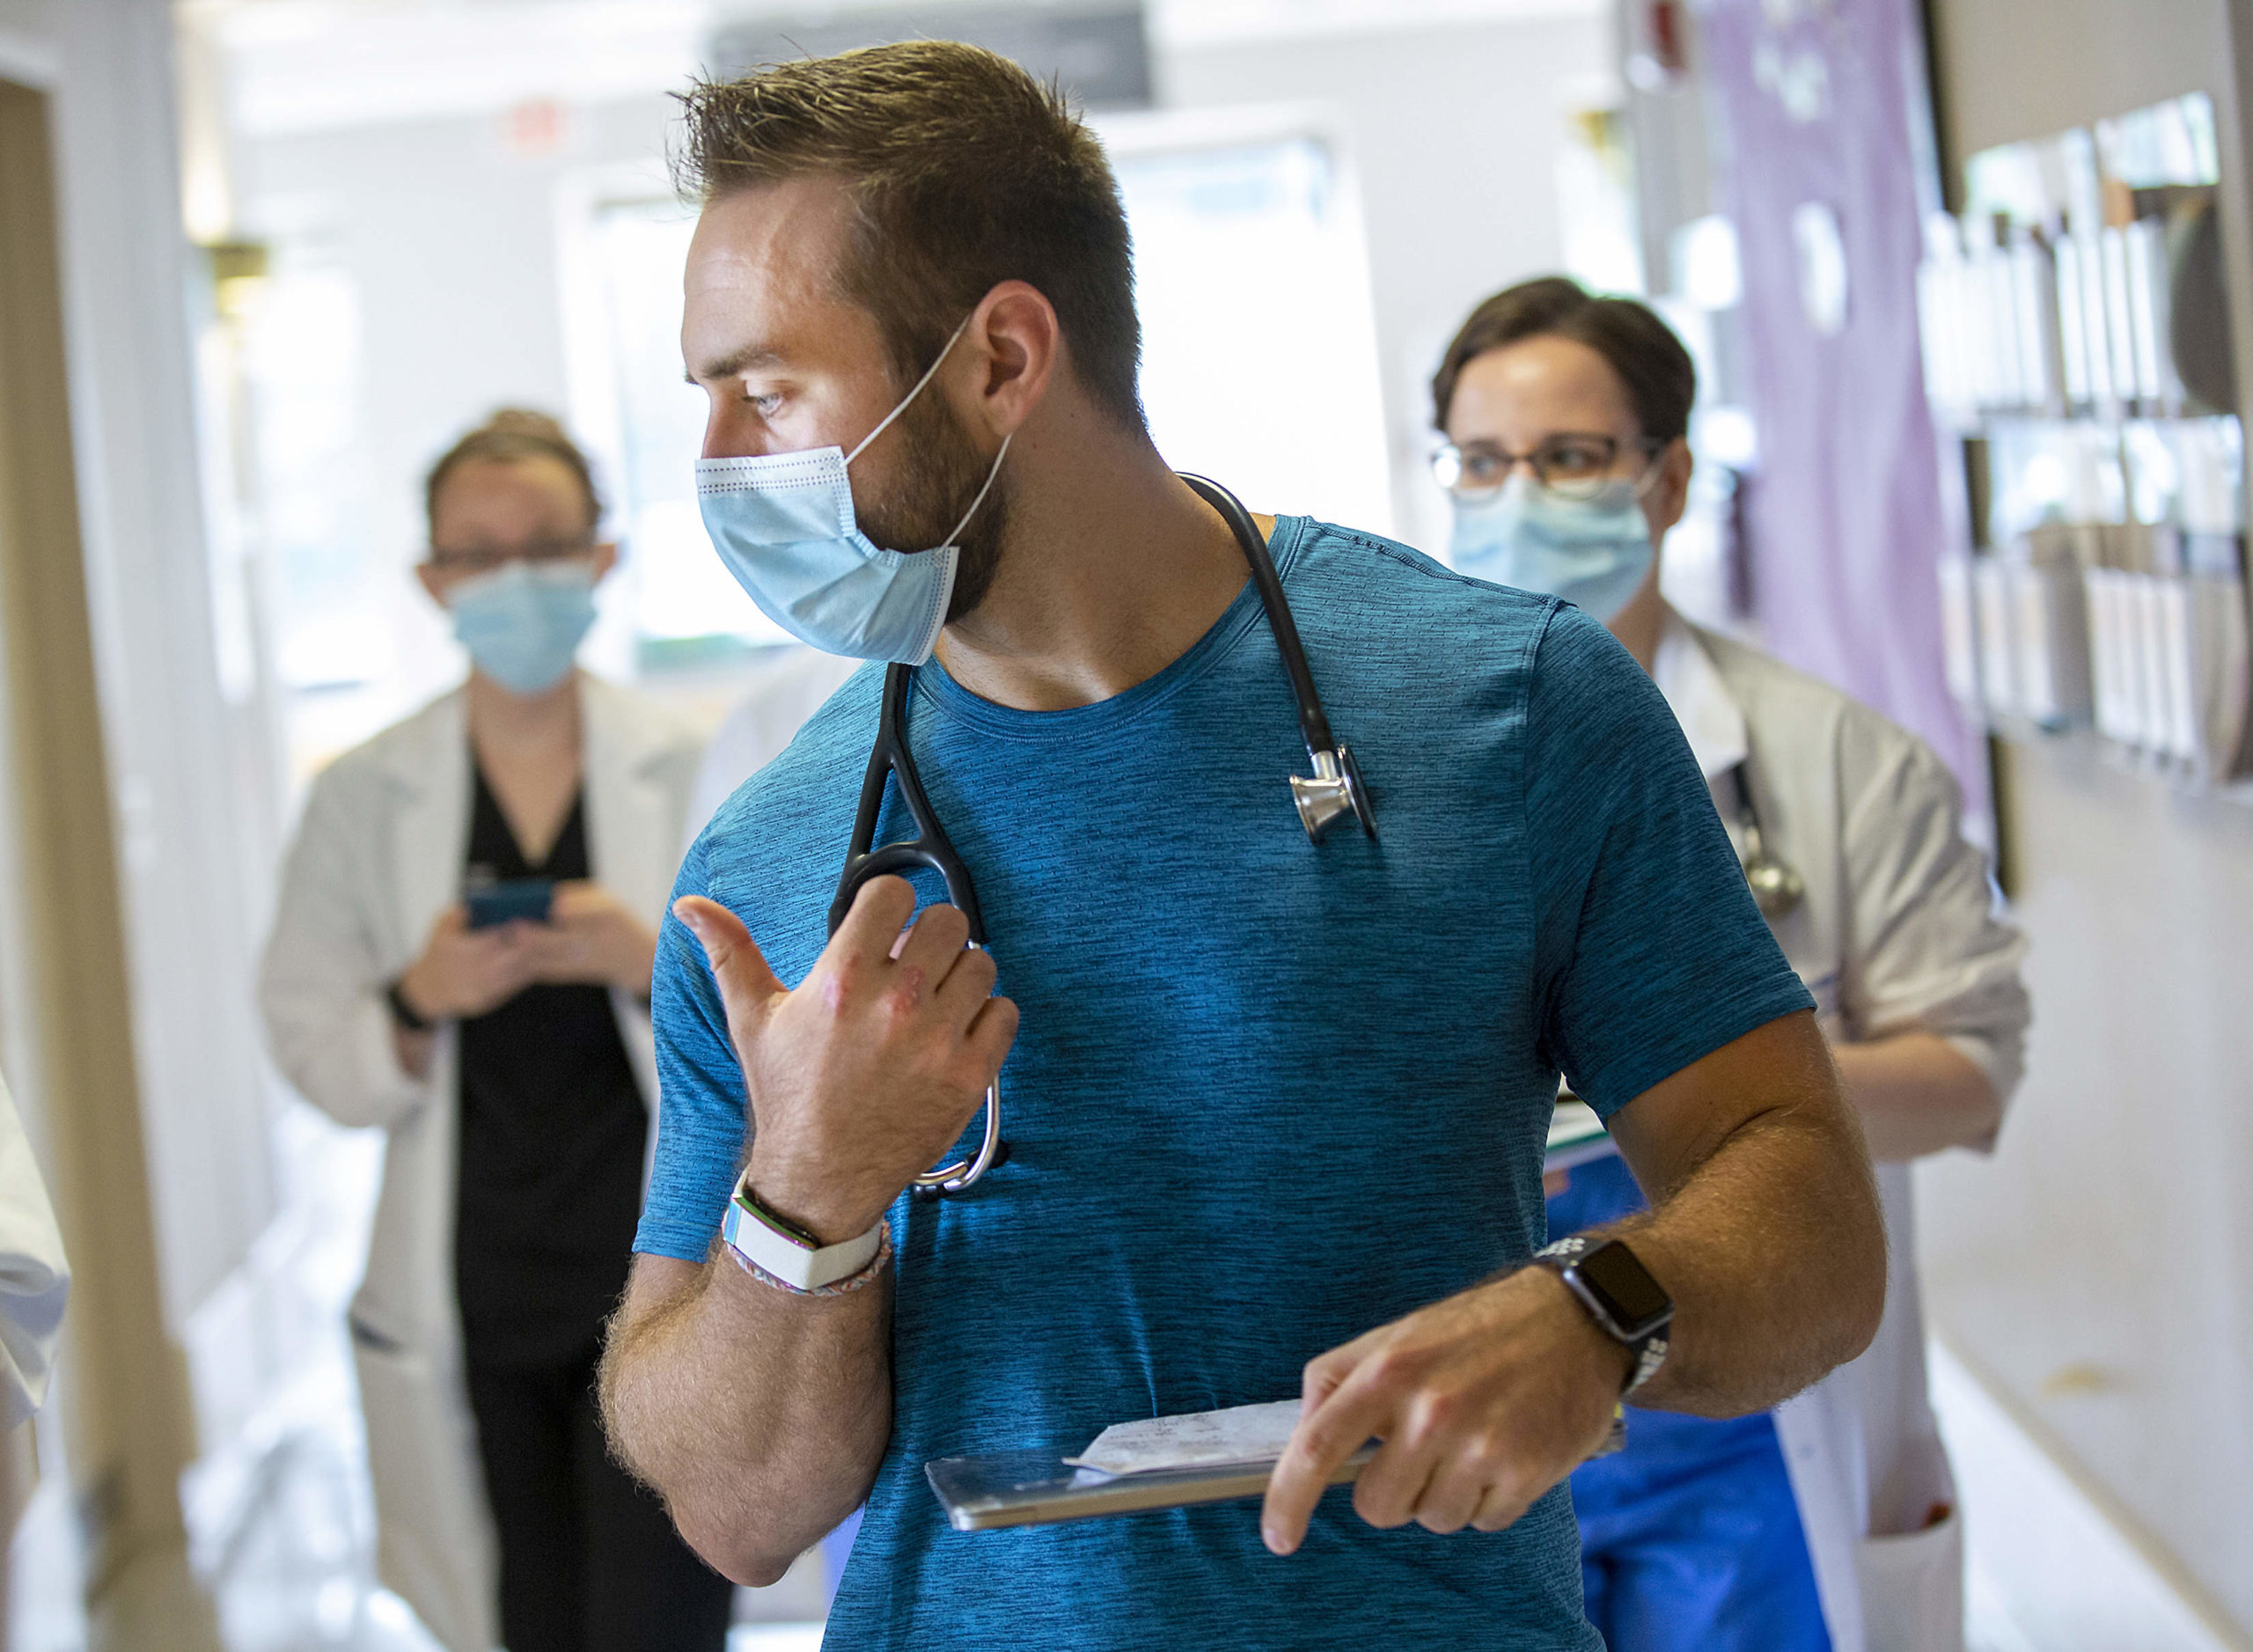 Dr. Alexander Hajduczok, a third-year internal medicine resident at Penn State Health Milton S. Hershey Medical Center, sports a wearable device manufactured by WHOOP on his right wrist. Two other physicians are behind him, walking down a hallway.